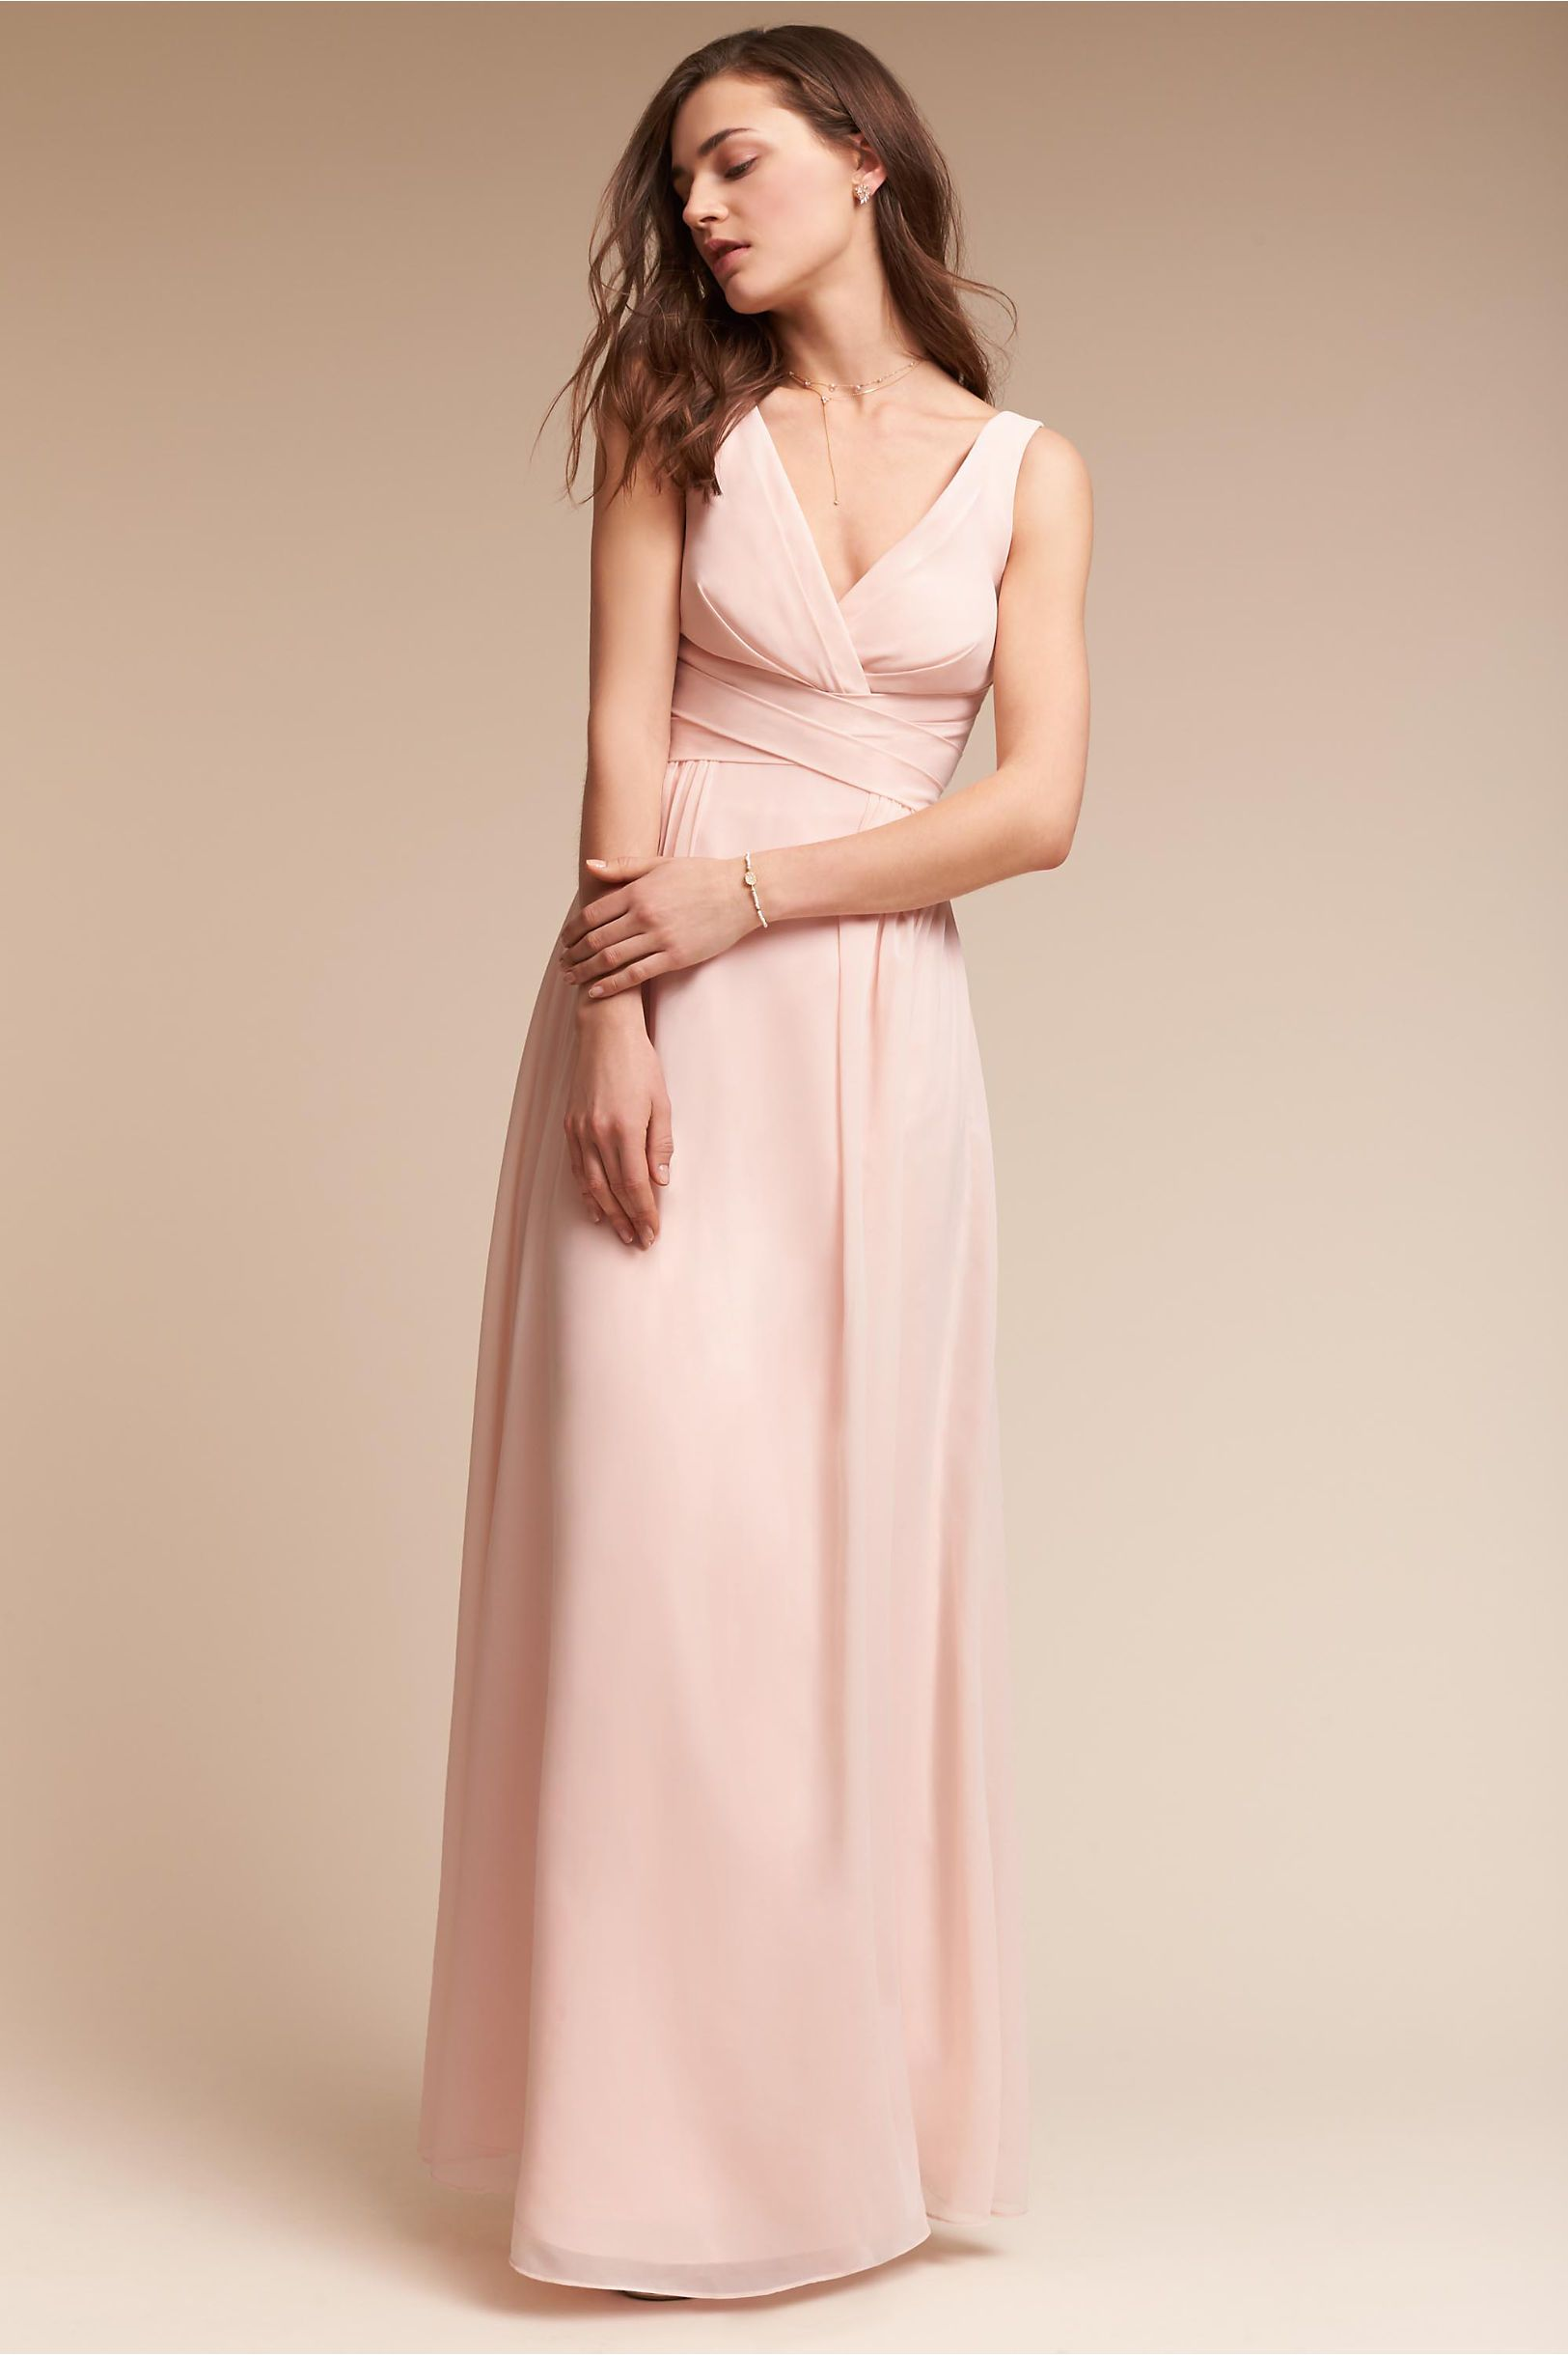 BHLDN Carnegie Dress in Bridal Party View All Dresses | BHLDN ...